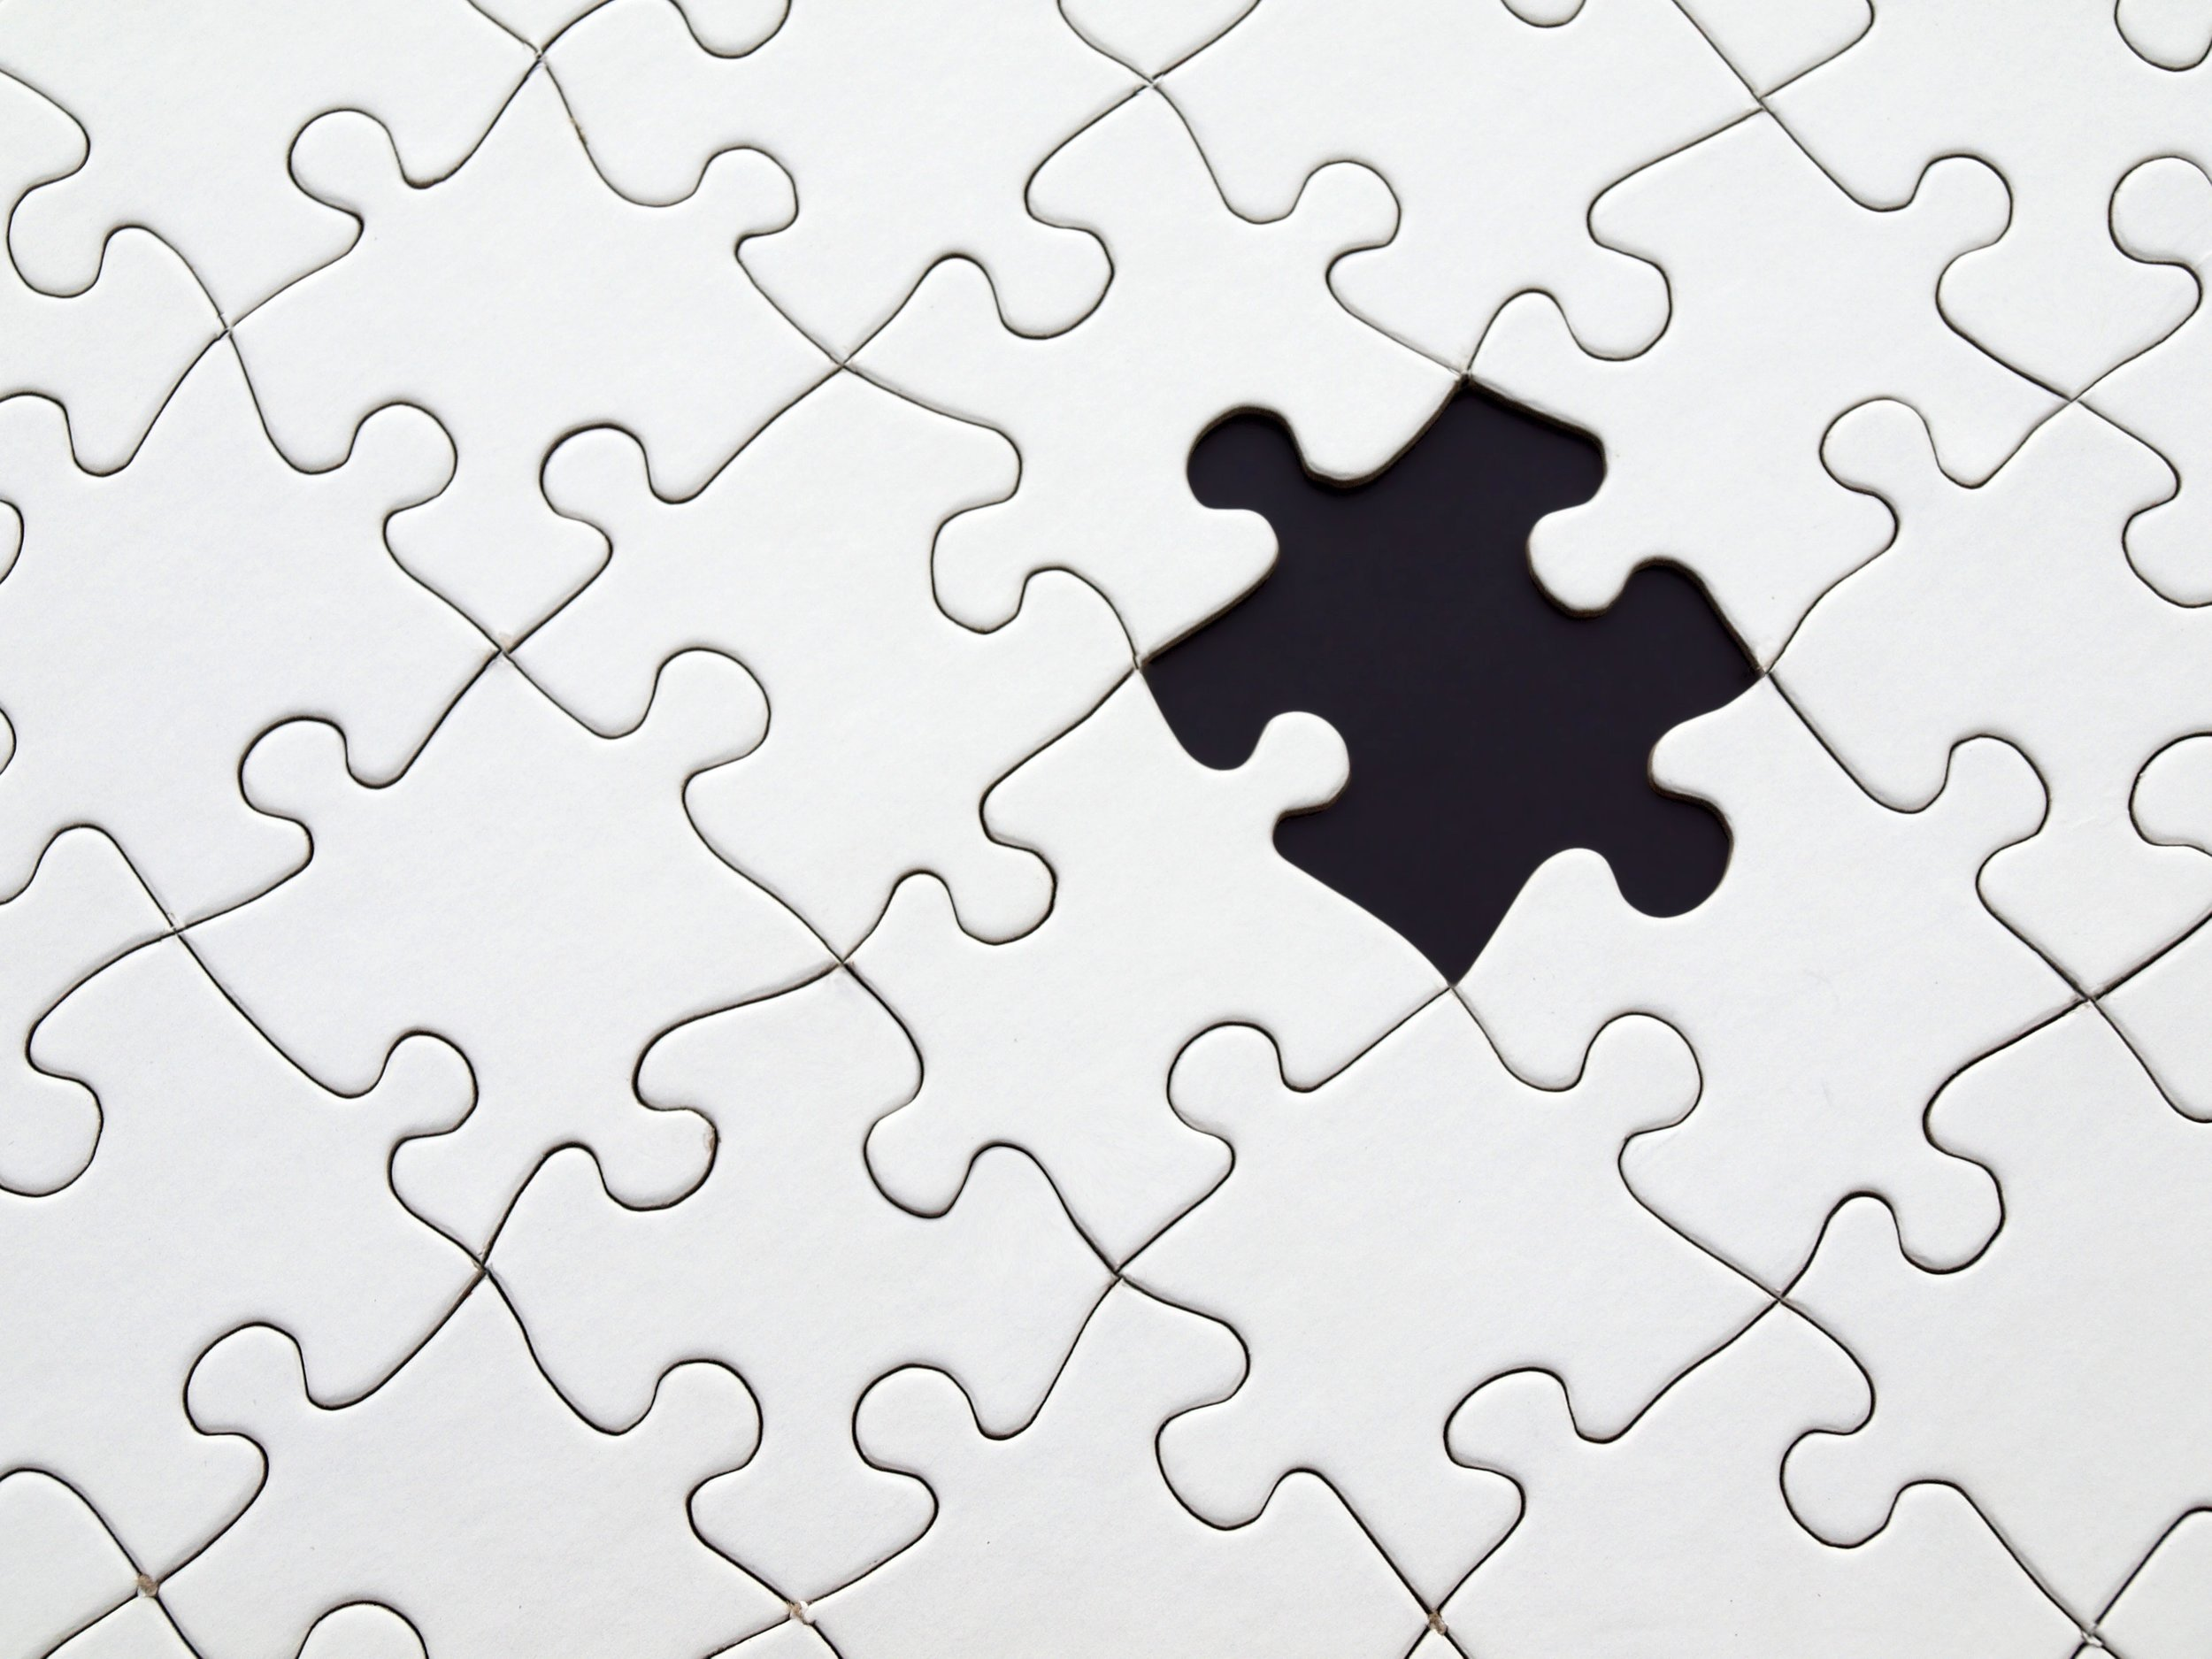 black-and-white-puzzle right fit - source pixabay found on Pexels-262488.jpg